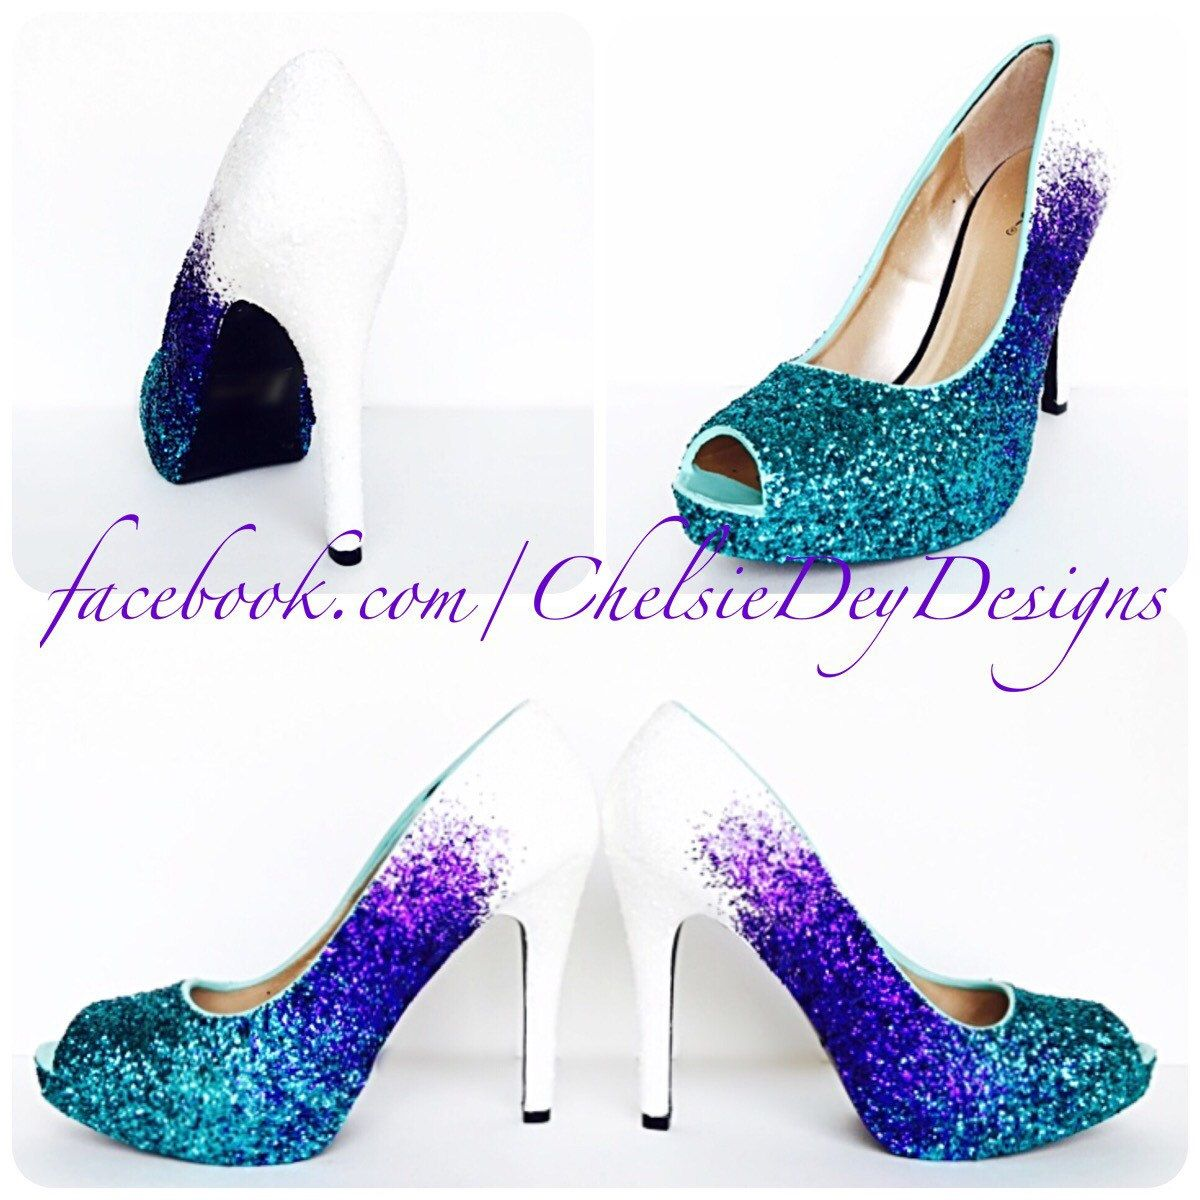 Glitter High Heels - Blue White Ombre Peep Toe Pumps - Purple Teal Wedding  Shoes - Sparkly Prom Heels - Turquoise Open Toe Platform Pumps - pinned by  ... 7ef2f22ac805